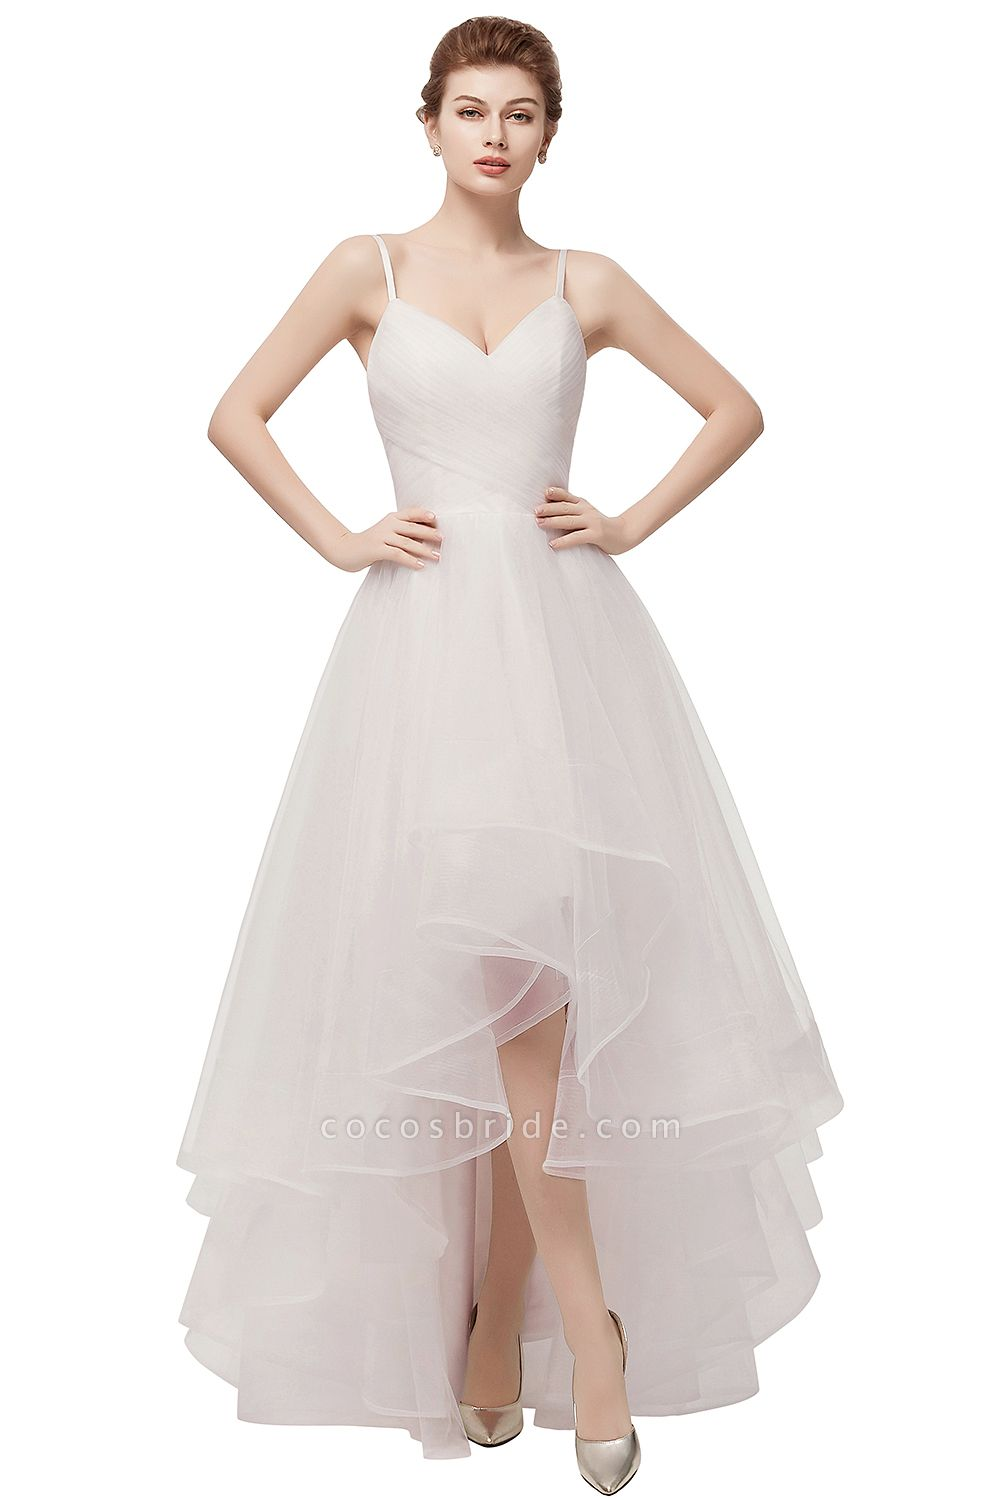 Awesome Sweetheart Tulle A-line Evening Dress